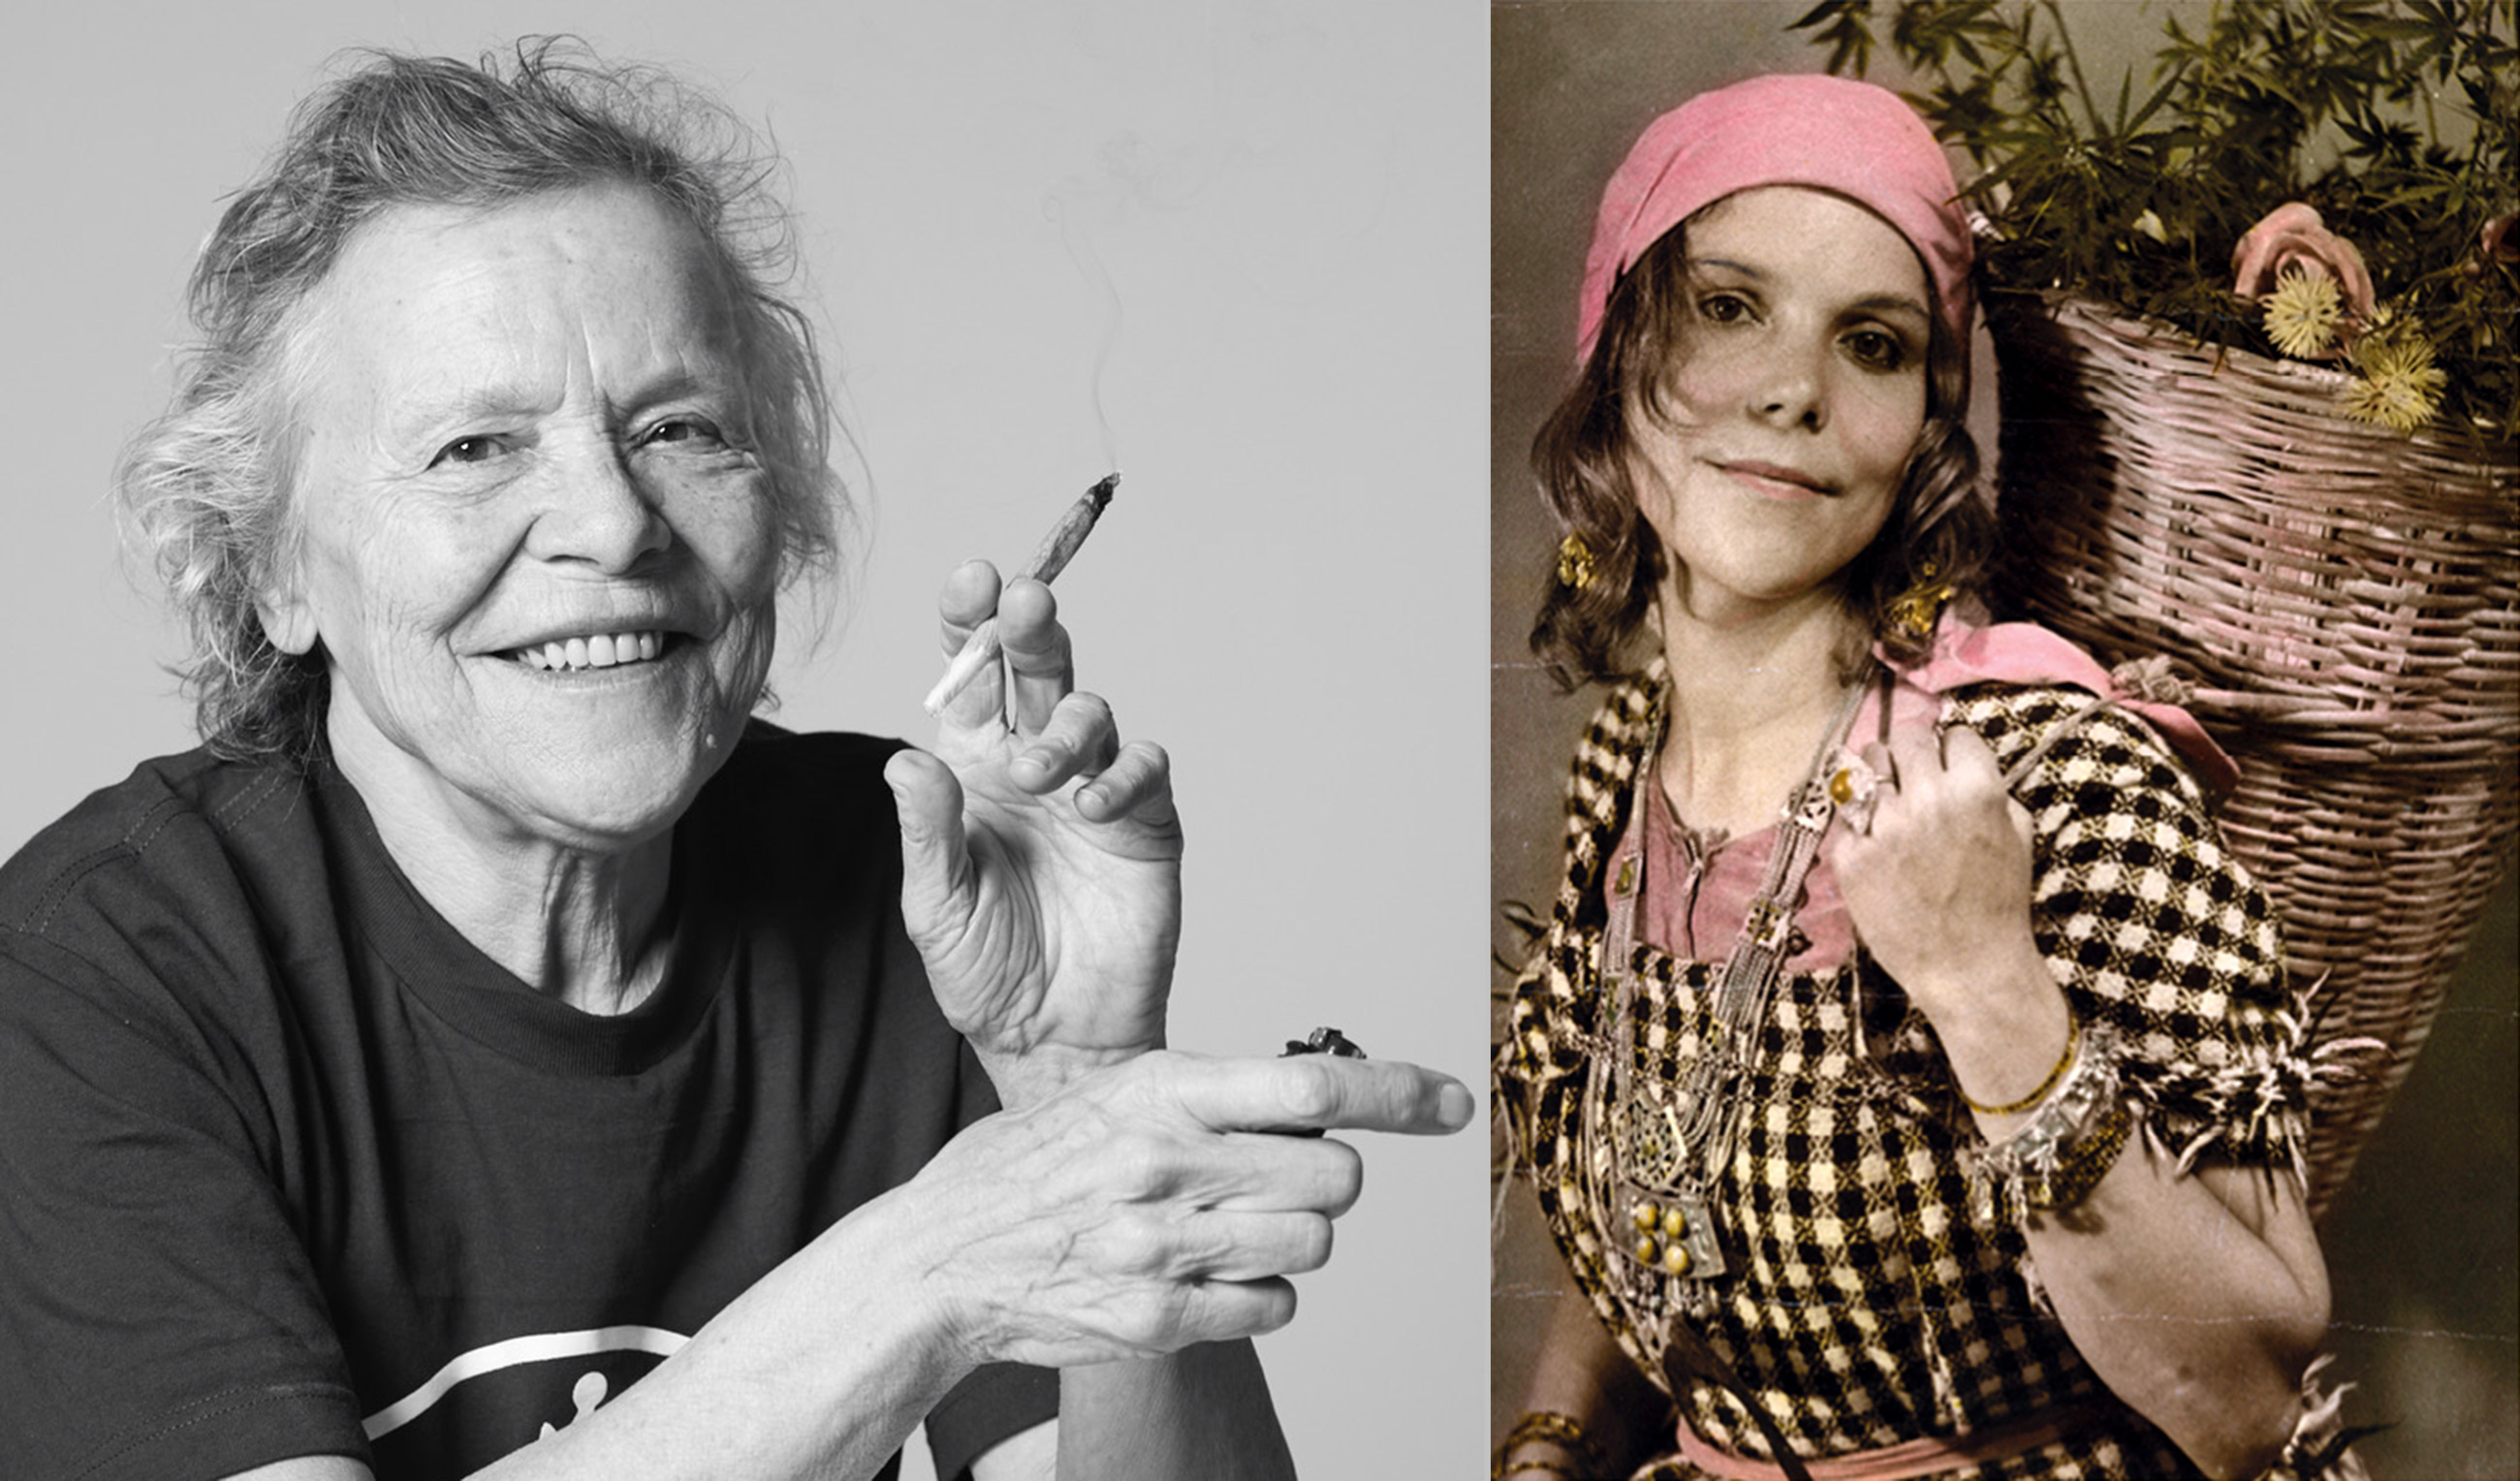 Two photographs of cannabis legend Mila Jansen. On the left, a black-and-white photograph that shows her laughing and holding a joint in her hand. On the right, a young Mila with a pink bandana around her head and a basketful of cannabis, which she is carrying on her back.